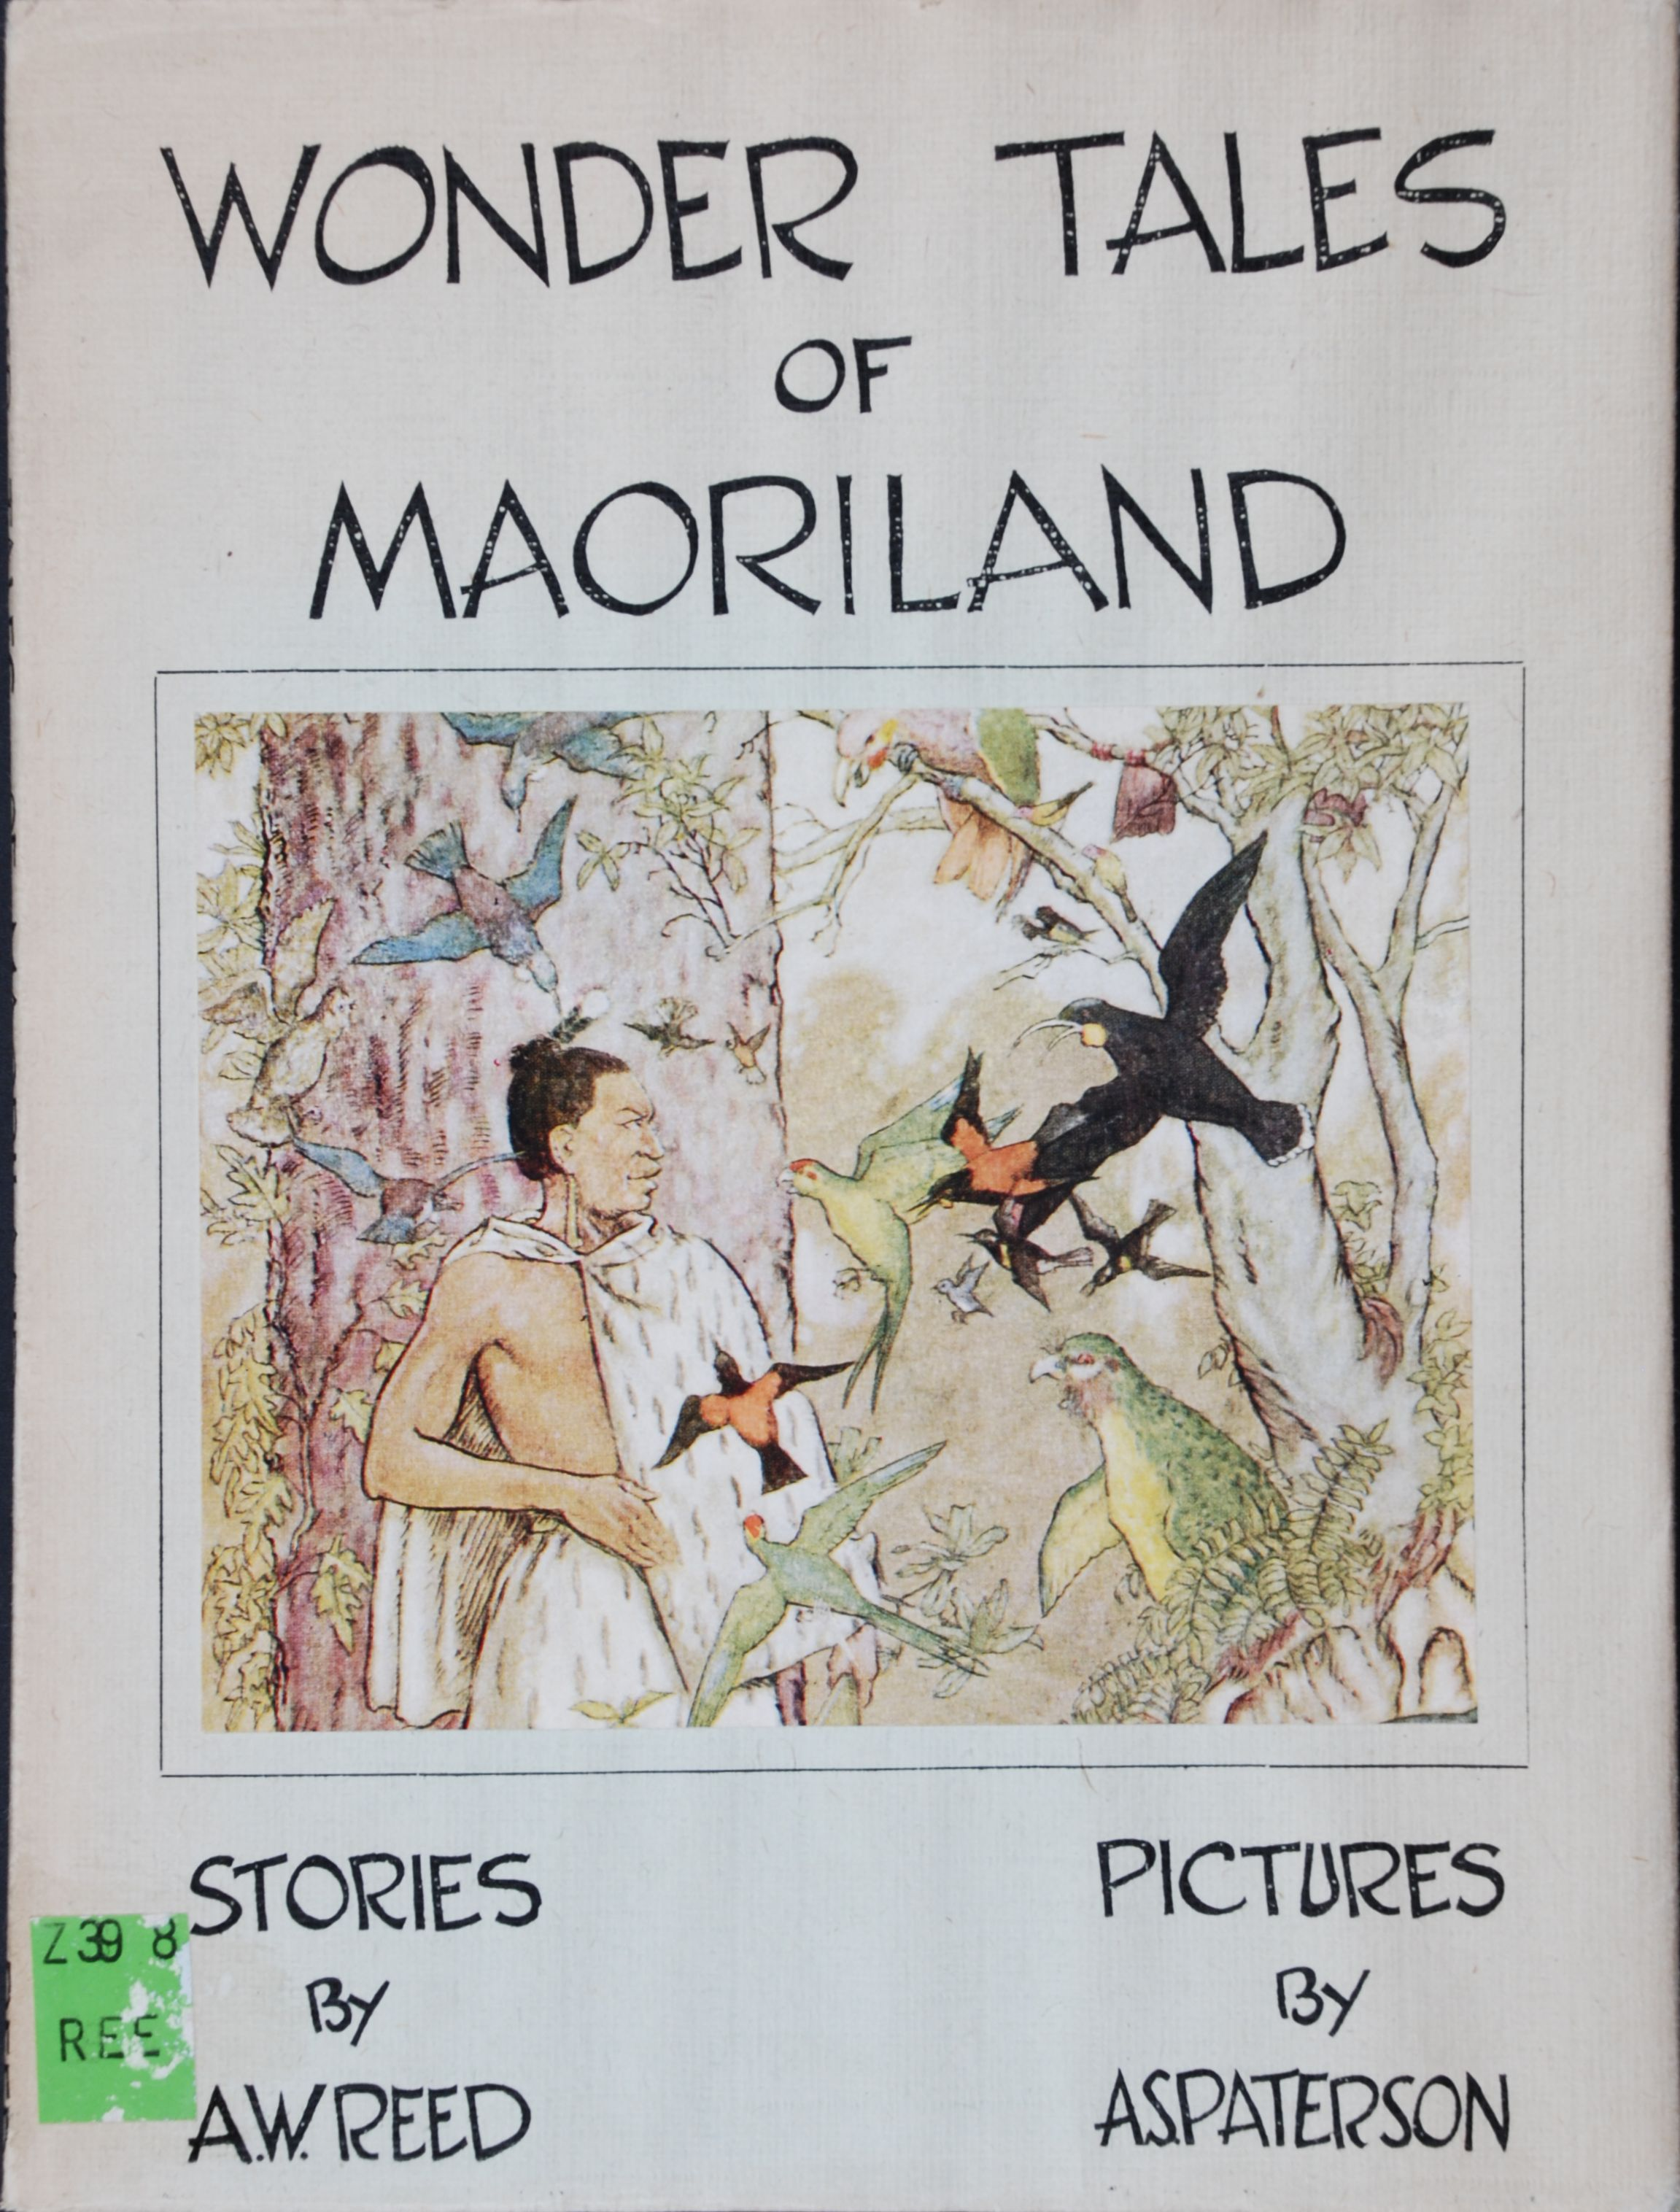 A.W. Reed. Wonder tales of Maoriland. Pictures by A.S. Paterson. Wellington, N.Z.: A.H. & A.W. Reed, 1948.